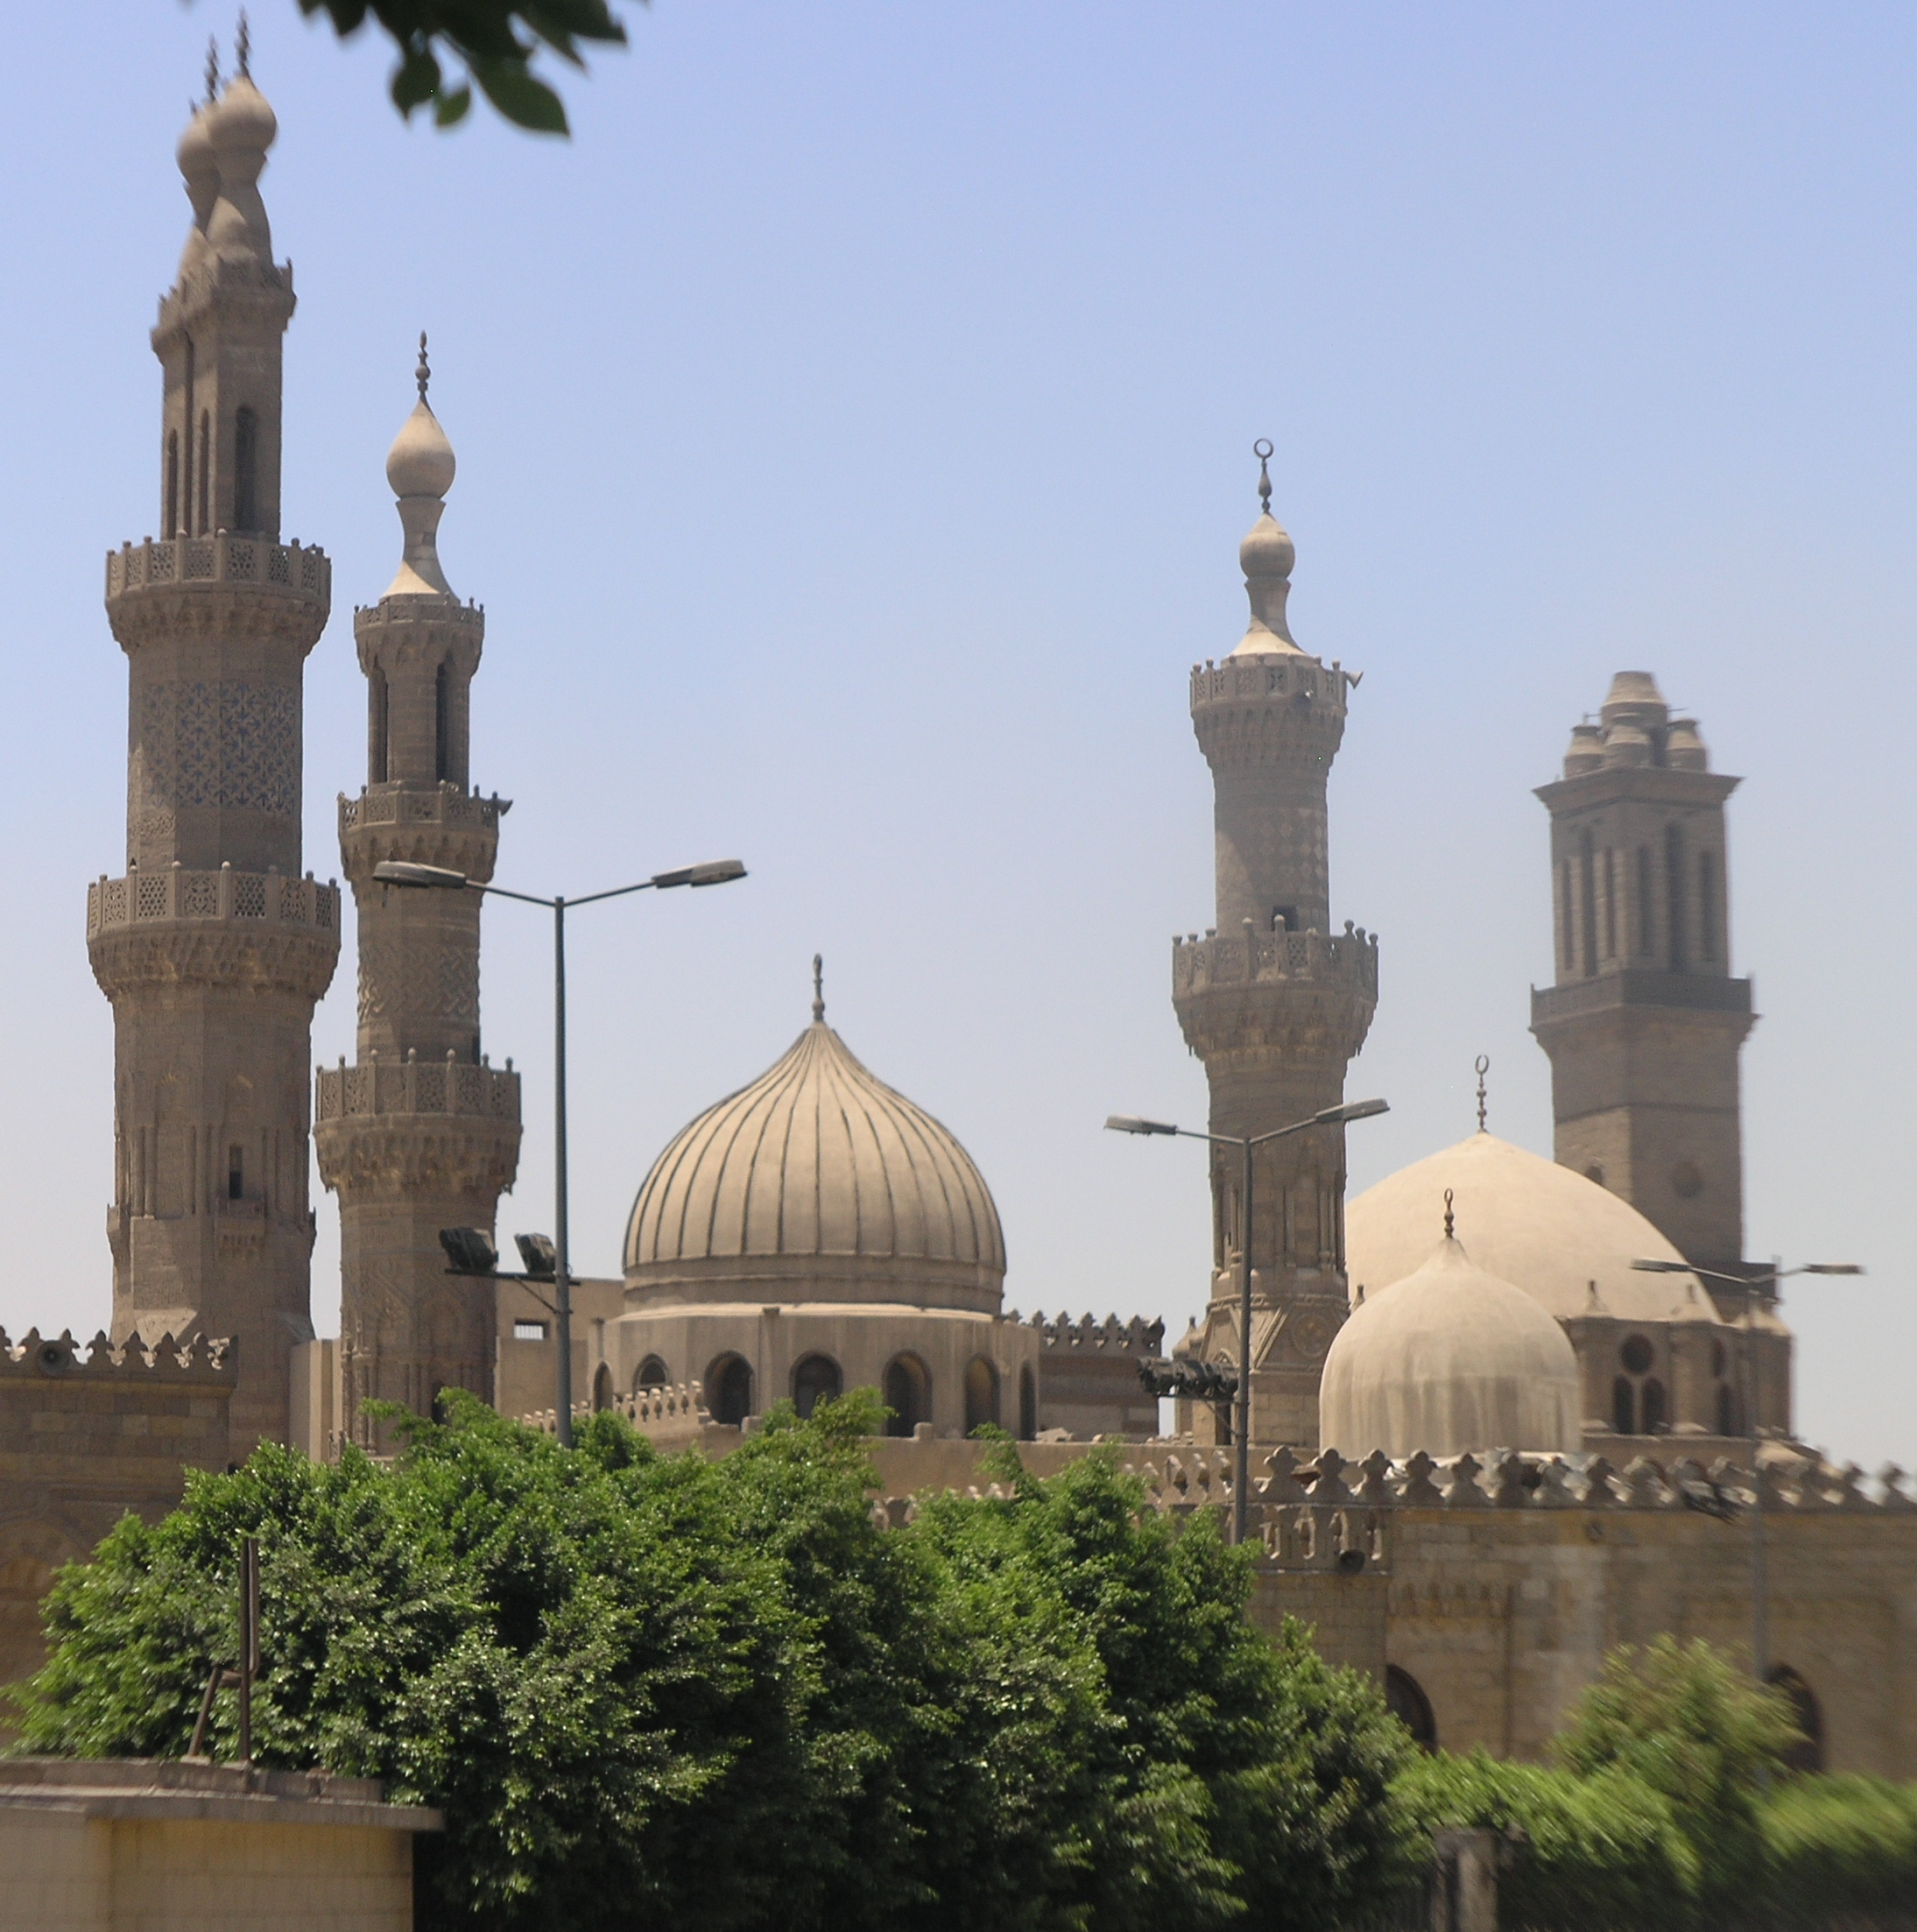 Exterior view of al-Azhar Mosque (Daniel Mayer, Creative Commons)